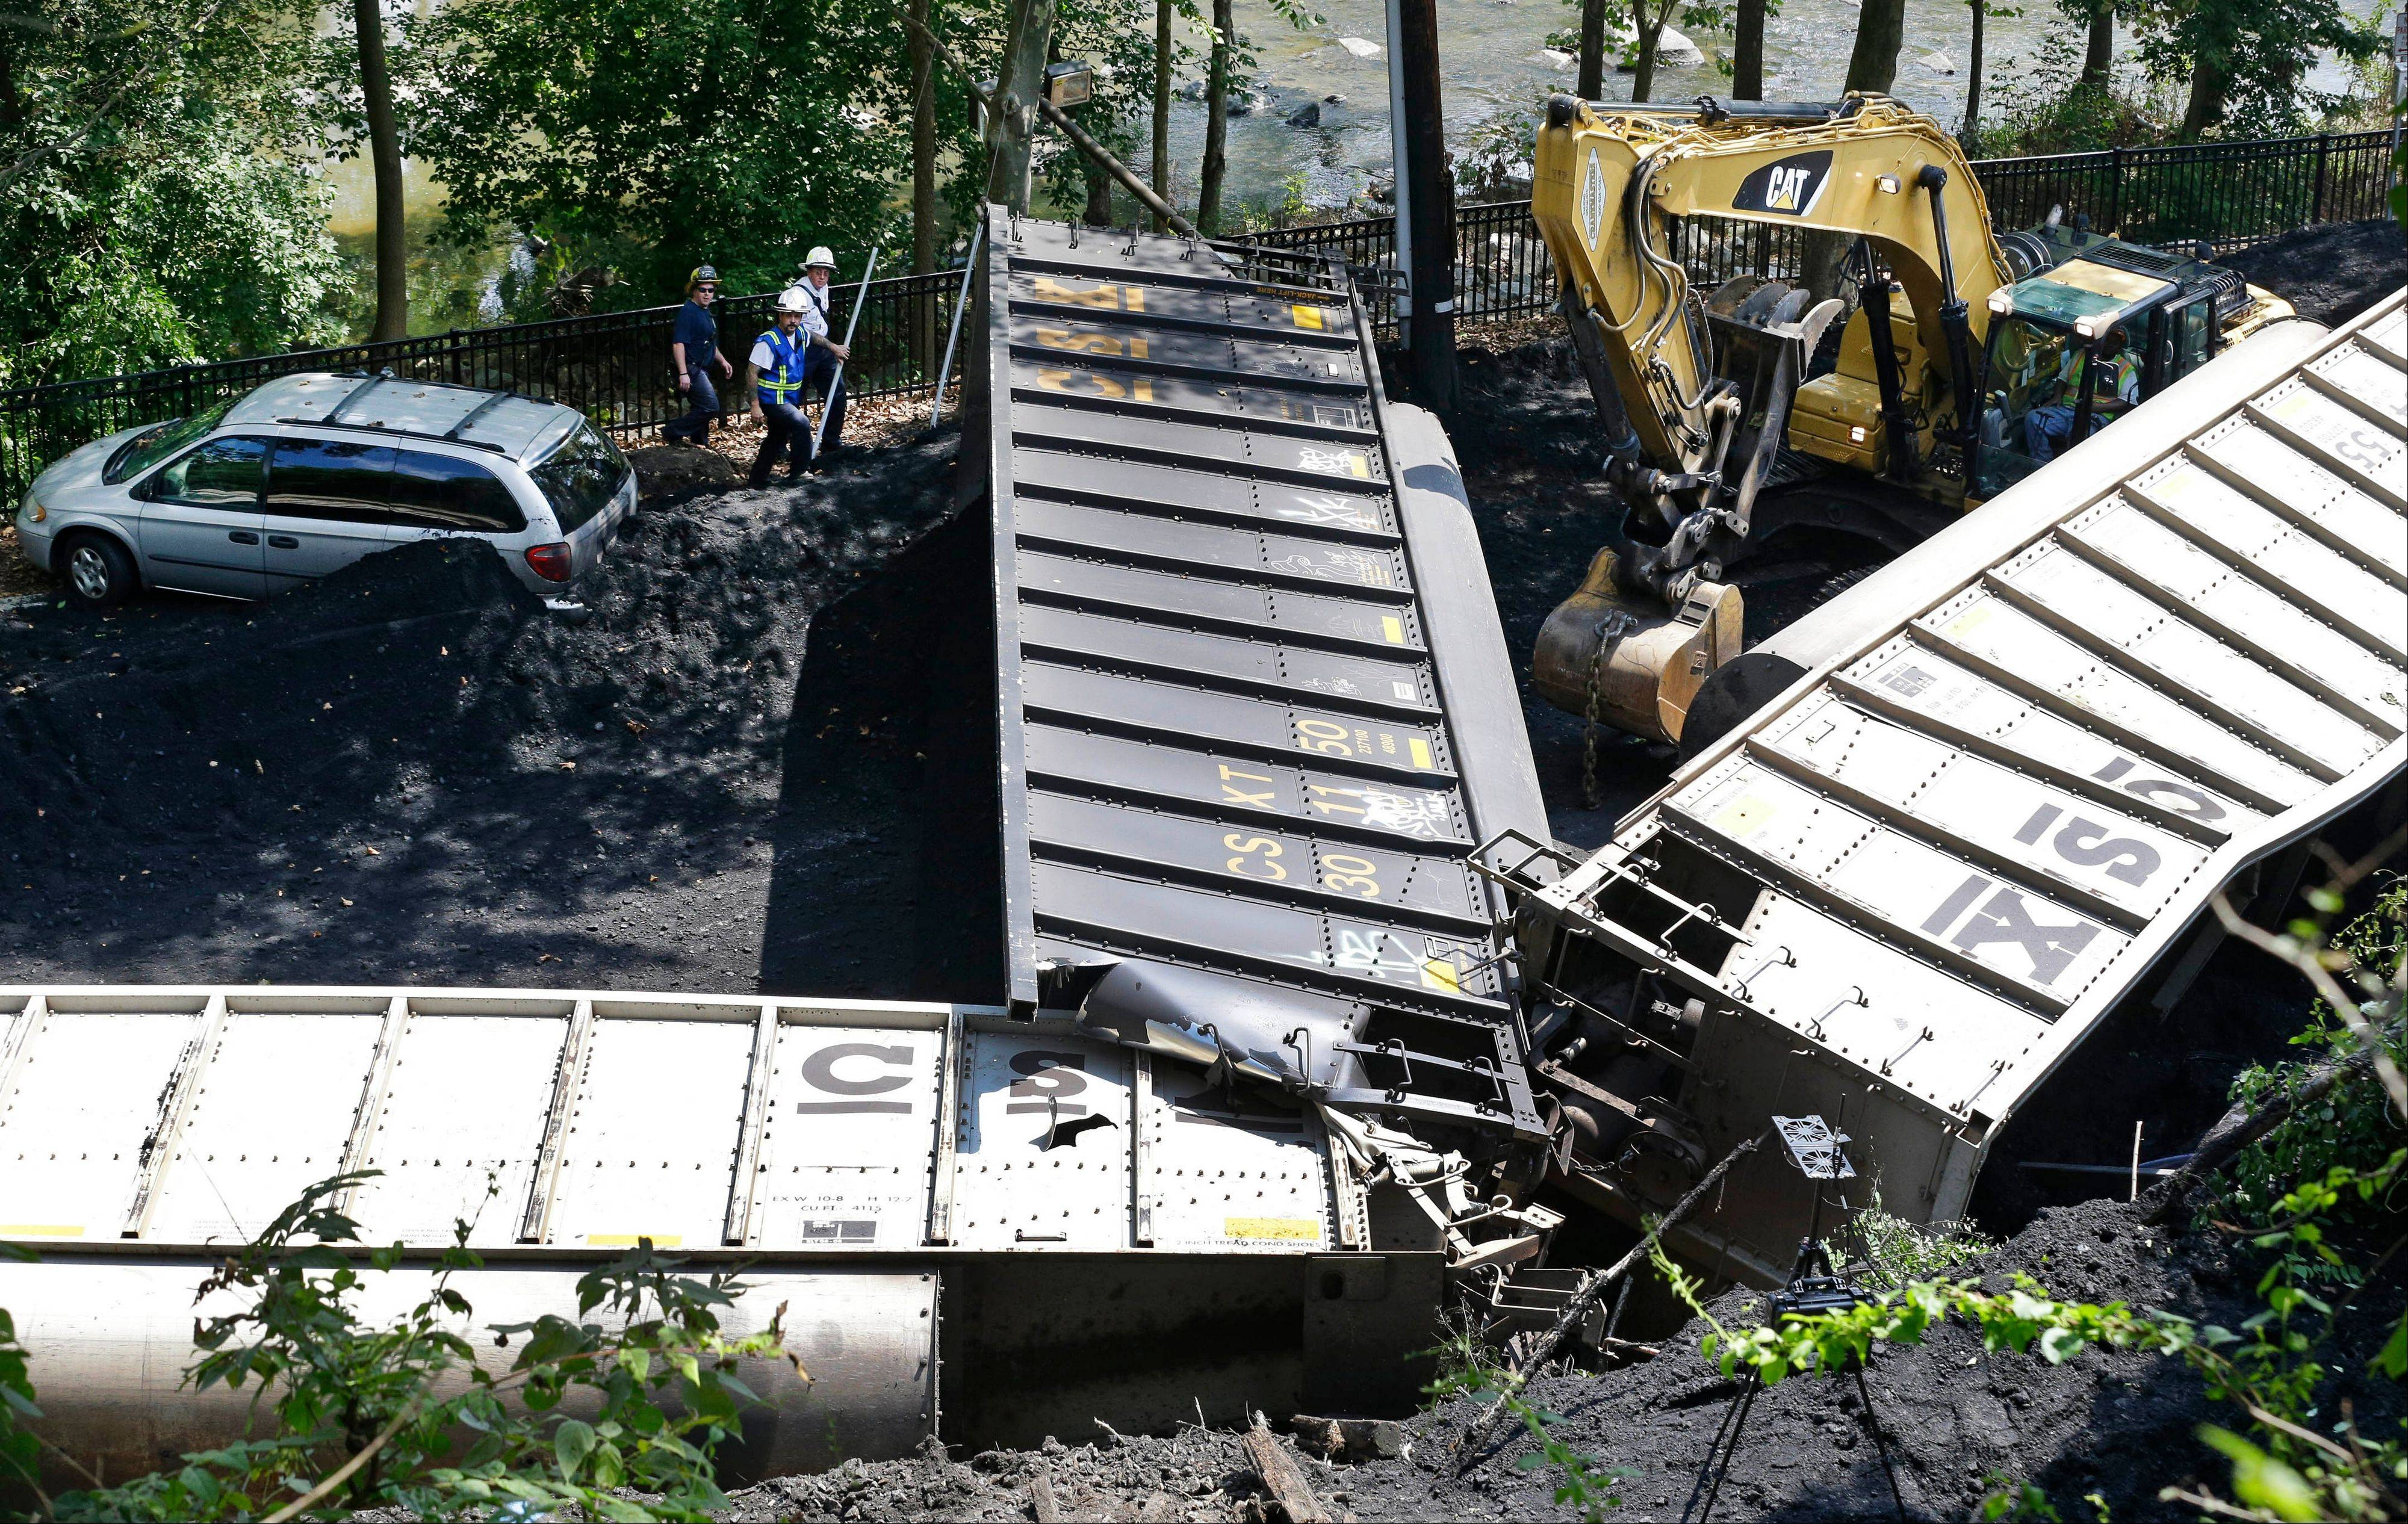 Investigators were checking videos, track conditions and maintenance records Wednesday to find the cause of a deadly train derailment in Maryland and figure out if two young women sitting on a railroad bridge over the town's main street contributed to the crash or if their presence was just a tragic coincidence.